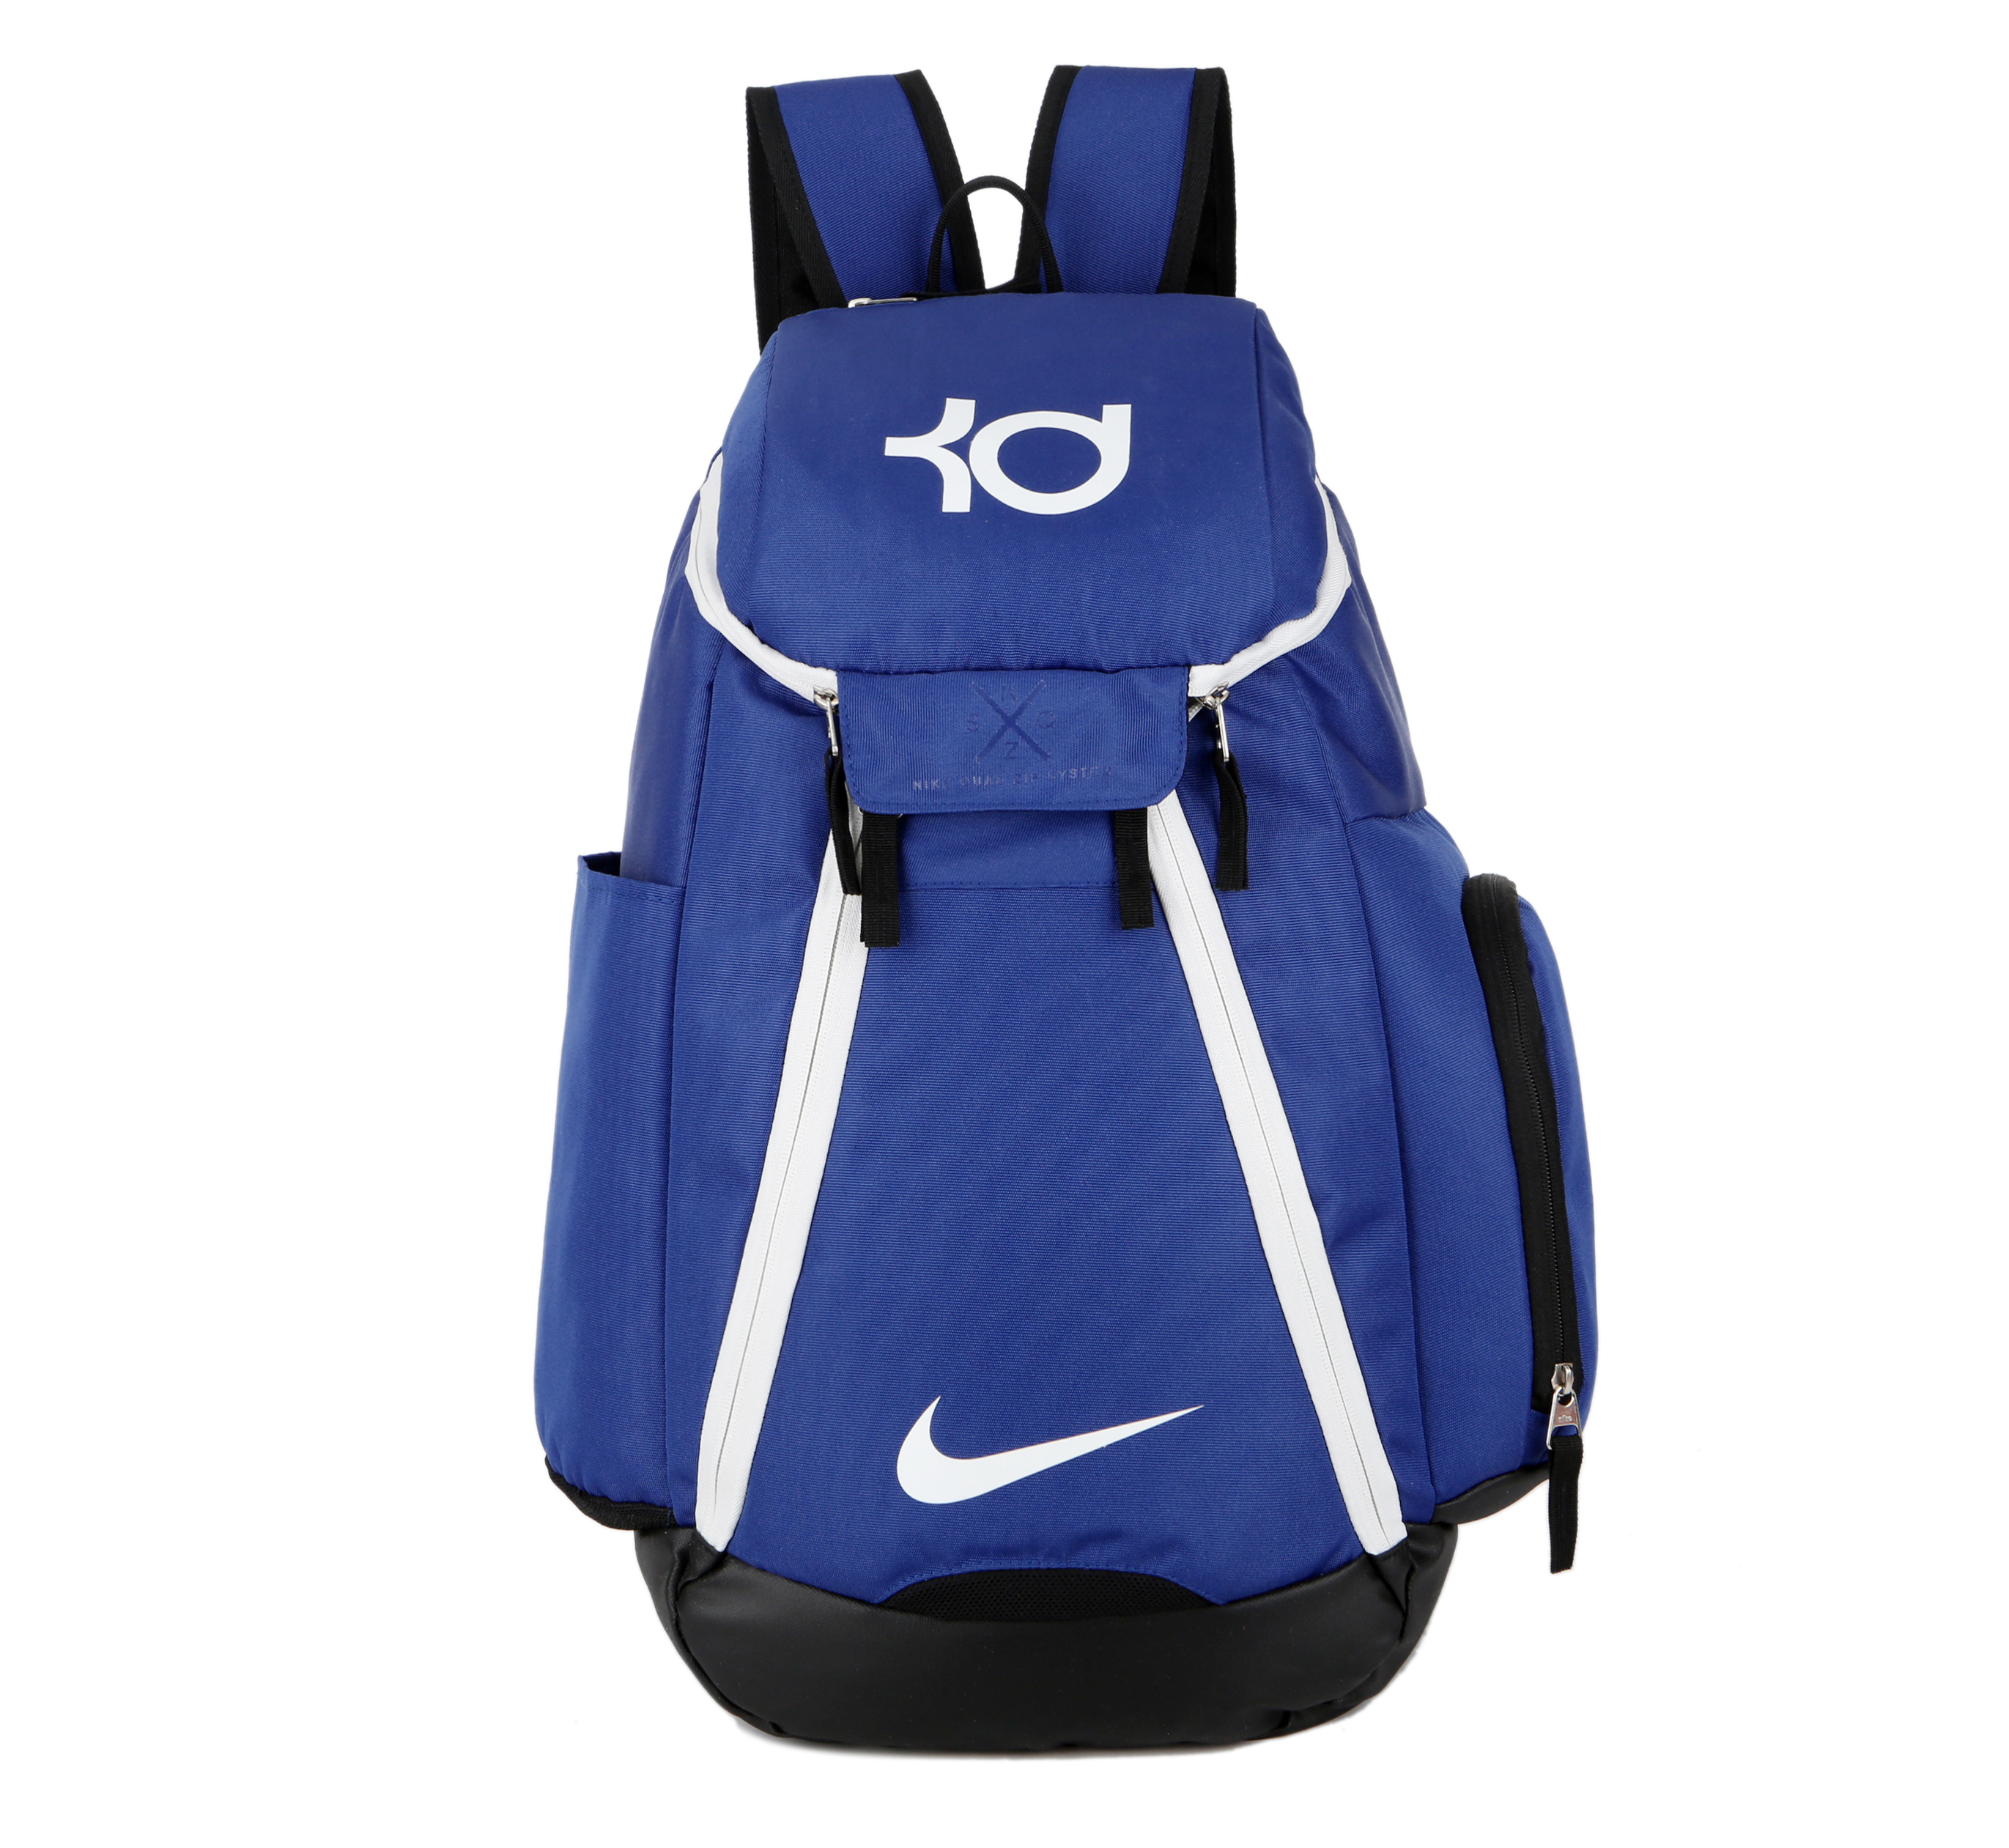 Nike KD Olympic Backpack Blue White Black